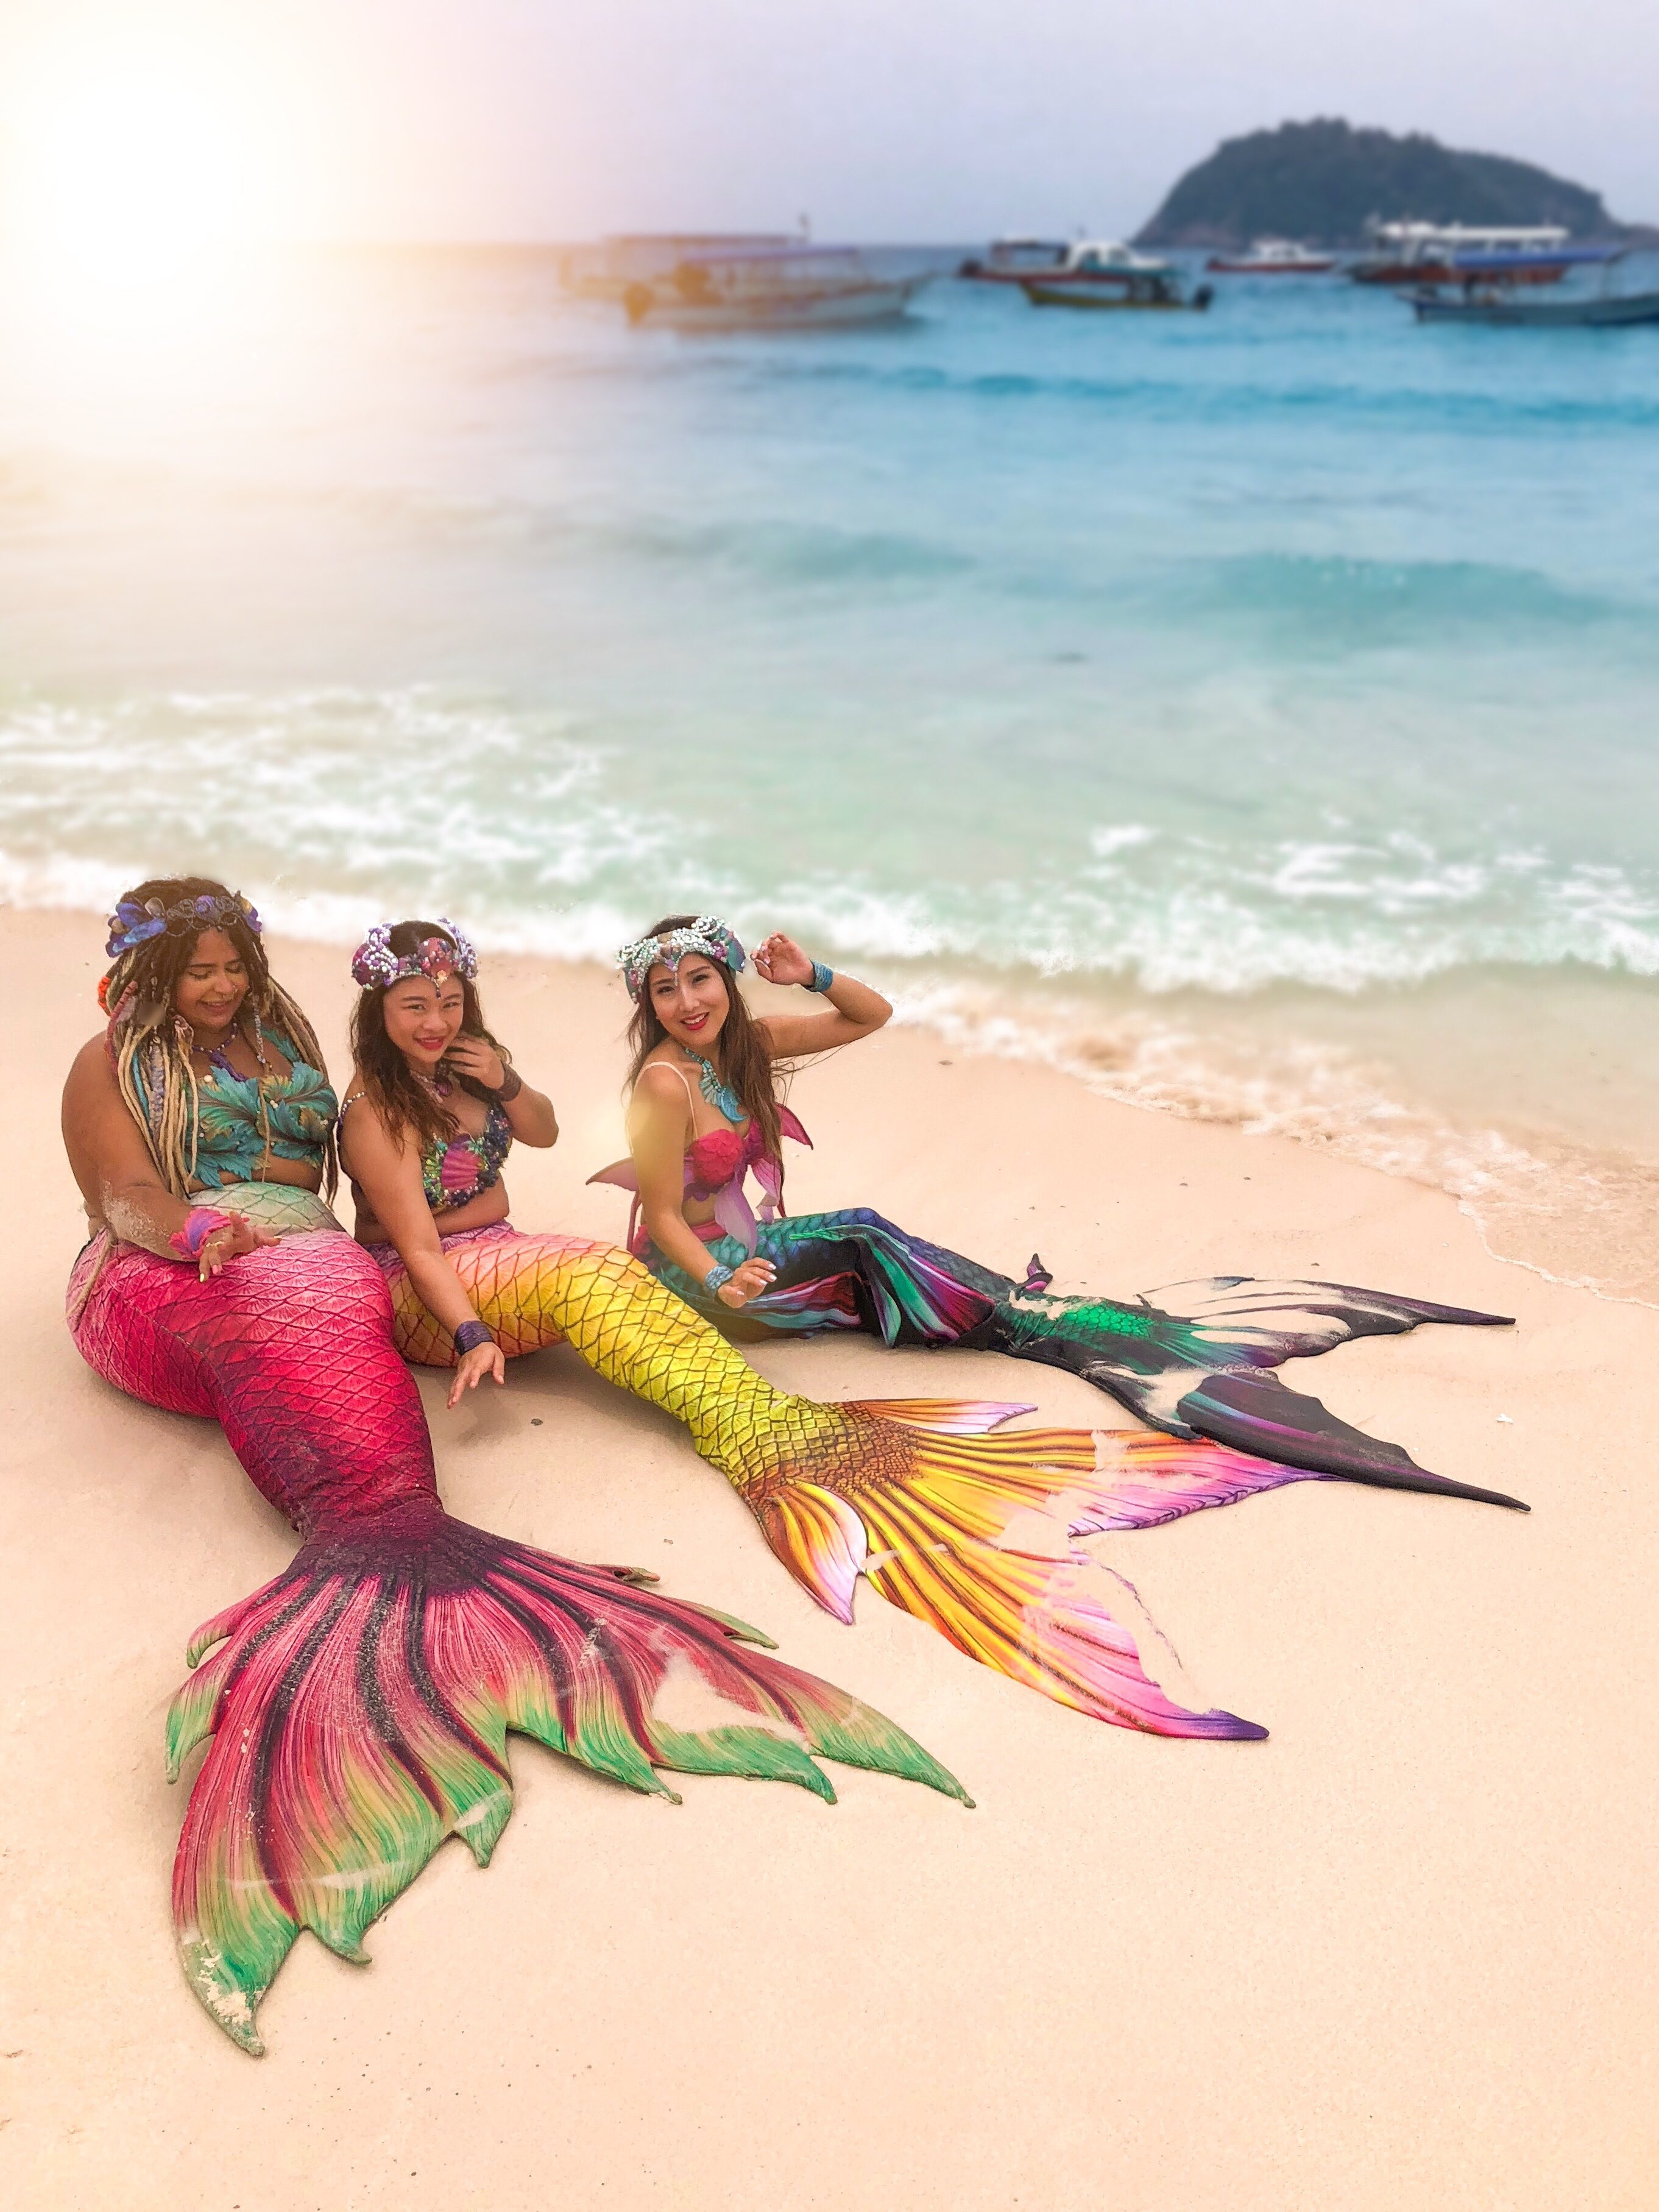 With visiting mermaids from abroad!